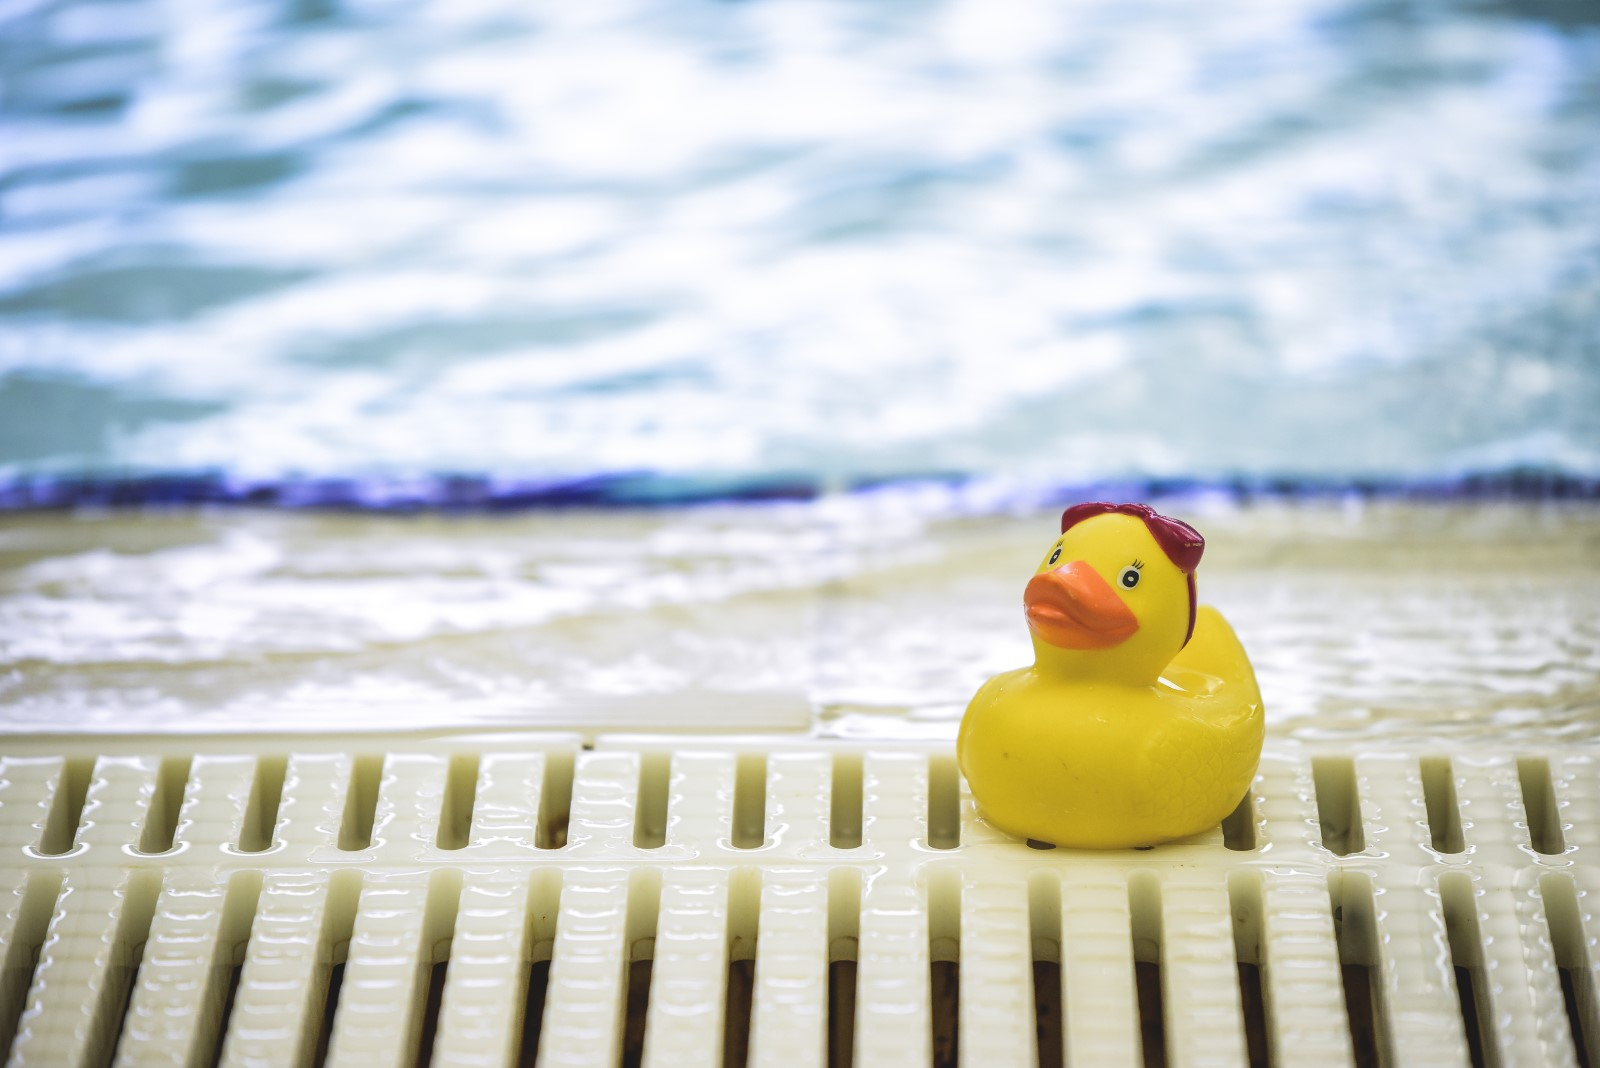 rubber duck on the side of a pool